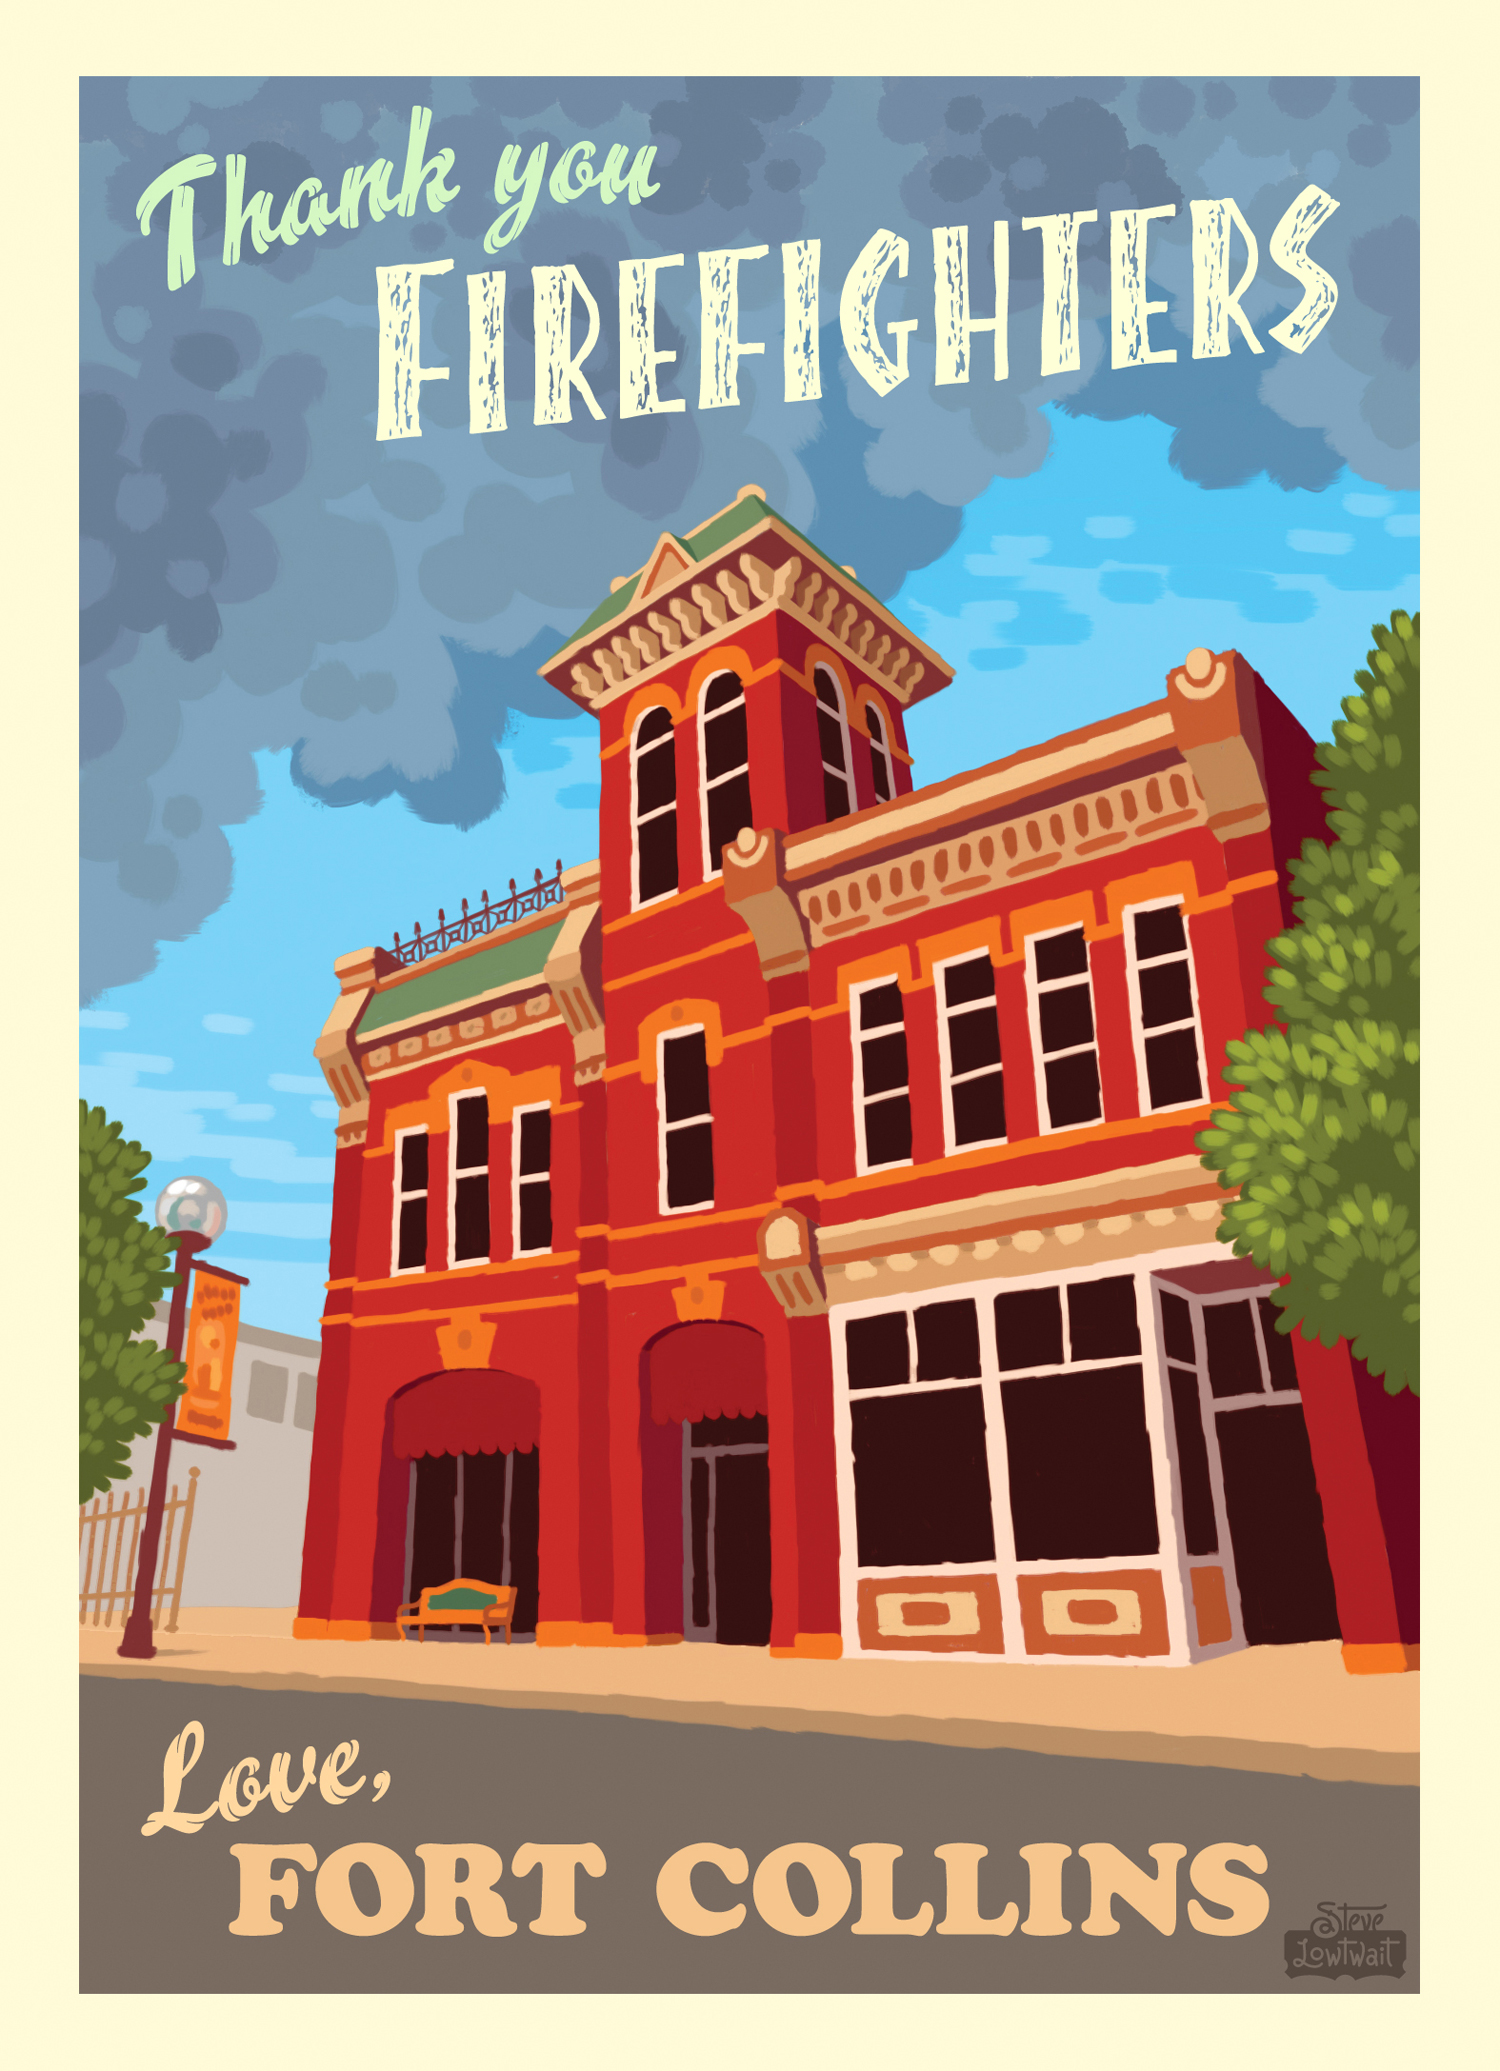 High Park Fire -Fort Collins,Colorado, 2012. •Smoke flumes from the fire float over the town's historic firehouse. It was the third most destructive wildfire in Colorado's history.